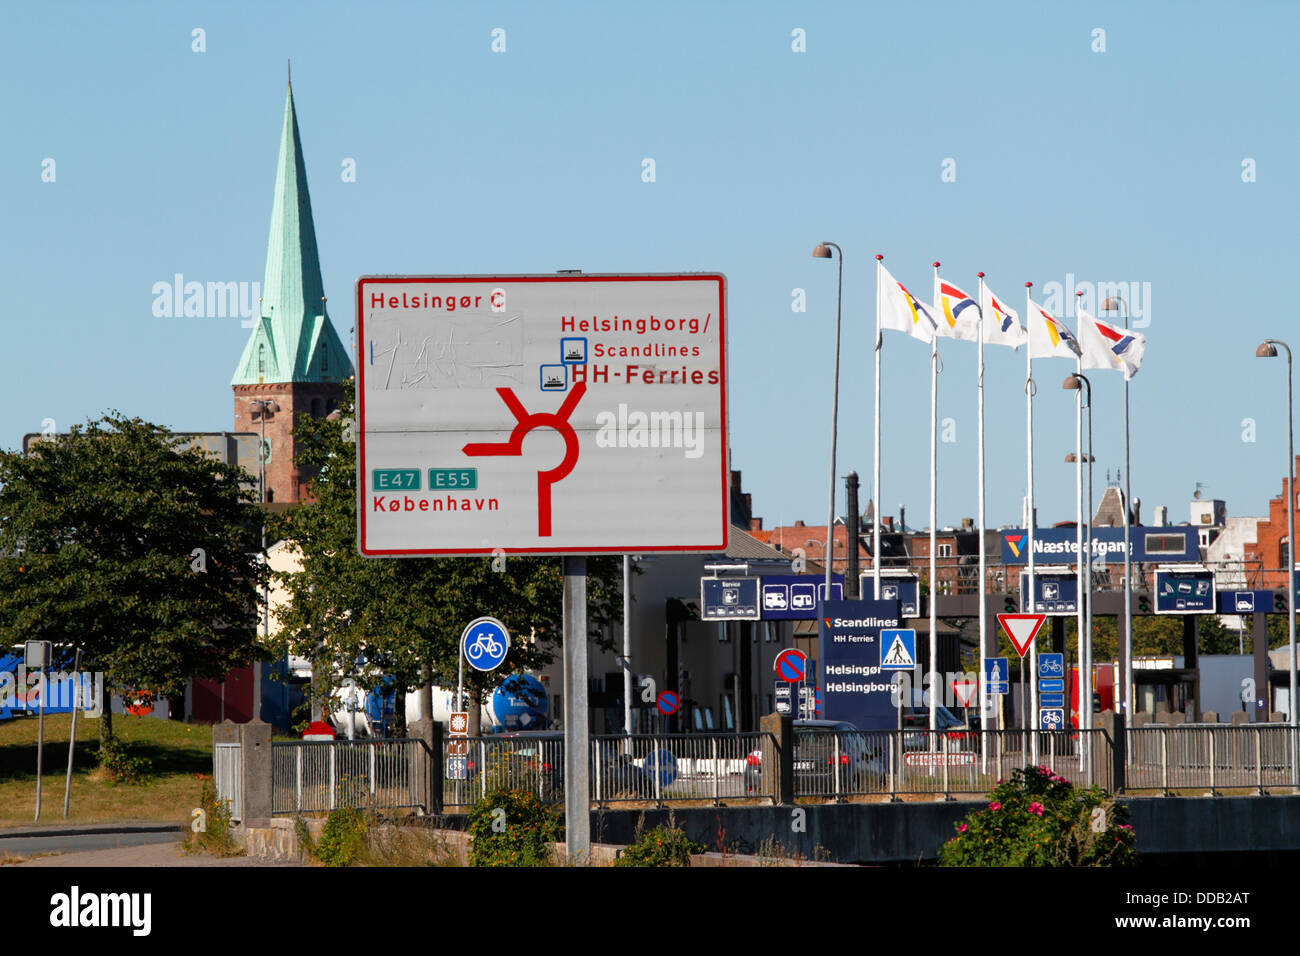 Somewhat confusing view in the last roundabout from the coastal road to Elsinore (Helsingør) or the ferry to - Stock Image